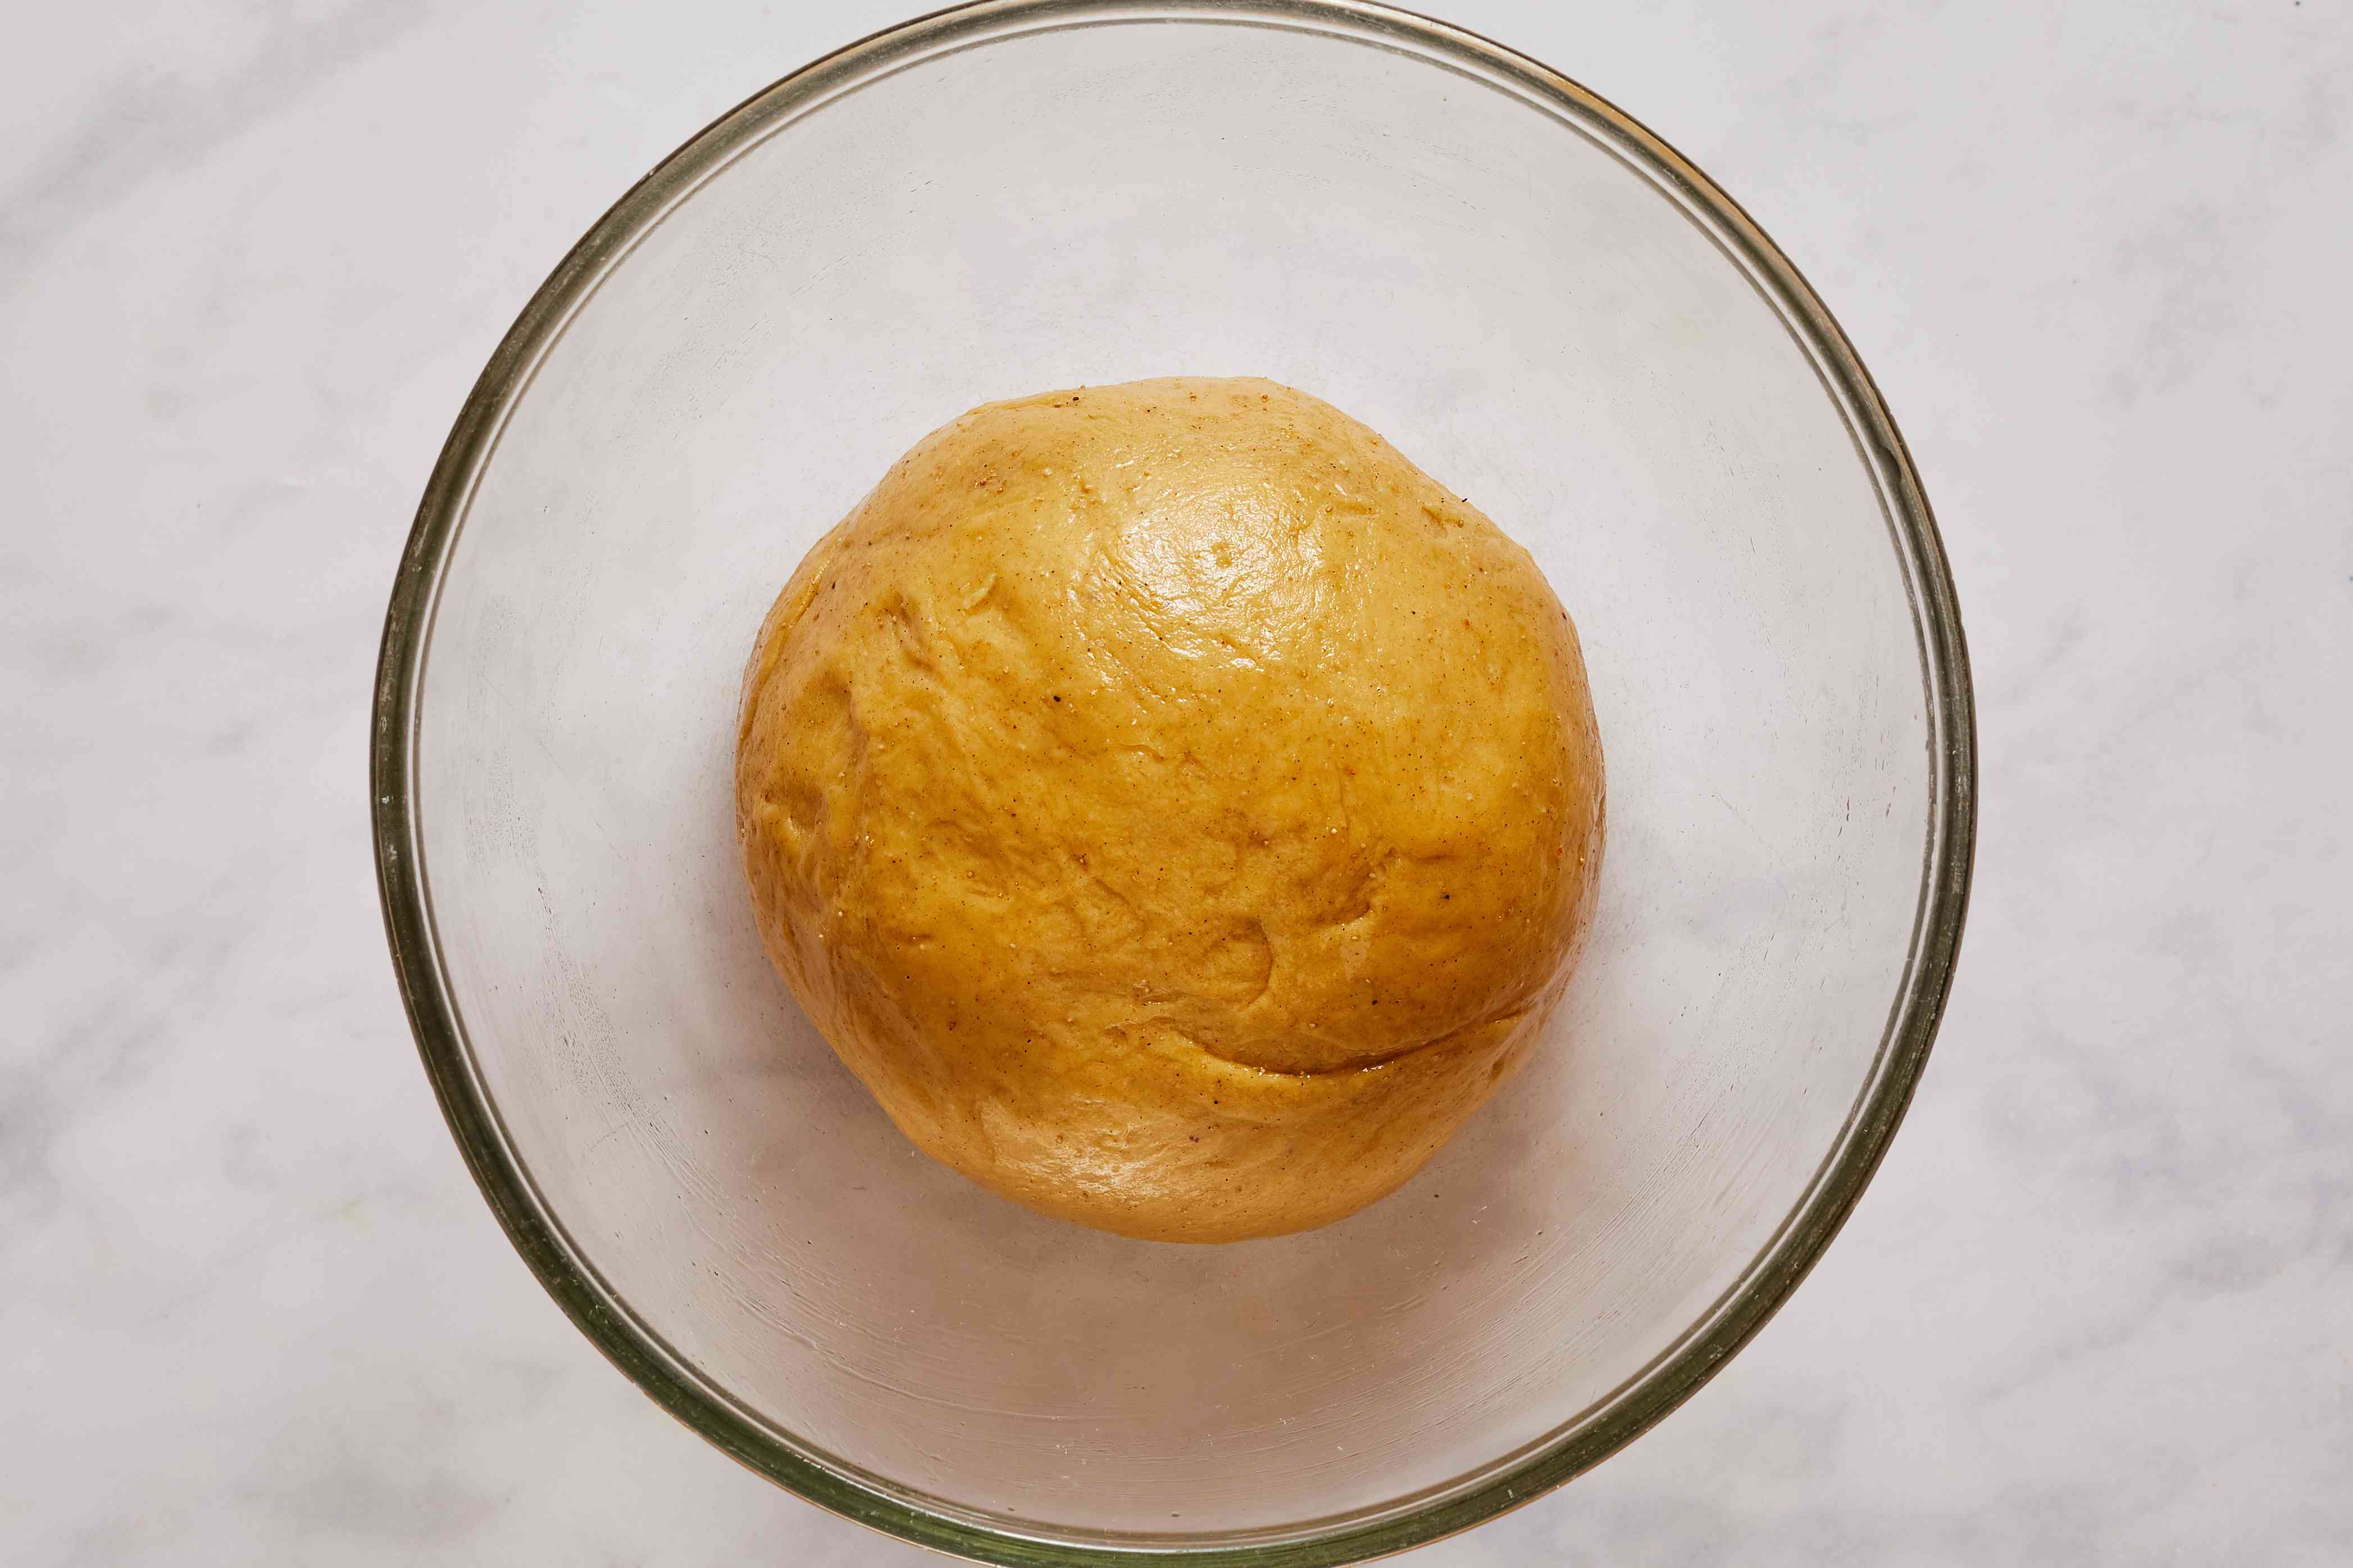 dough in a ball in a greased bowl